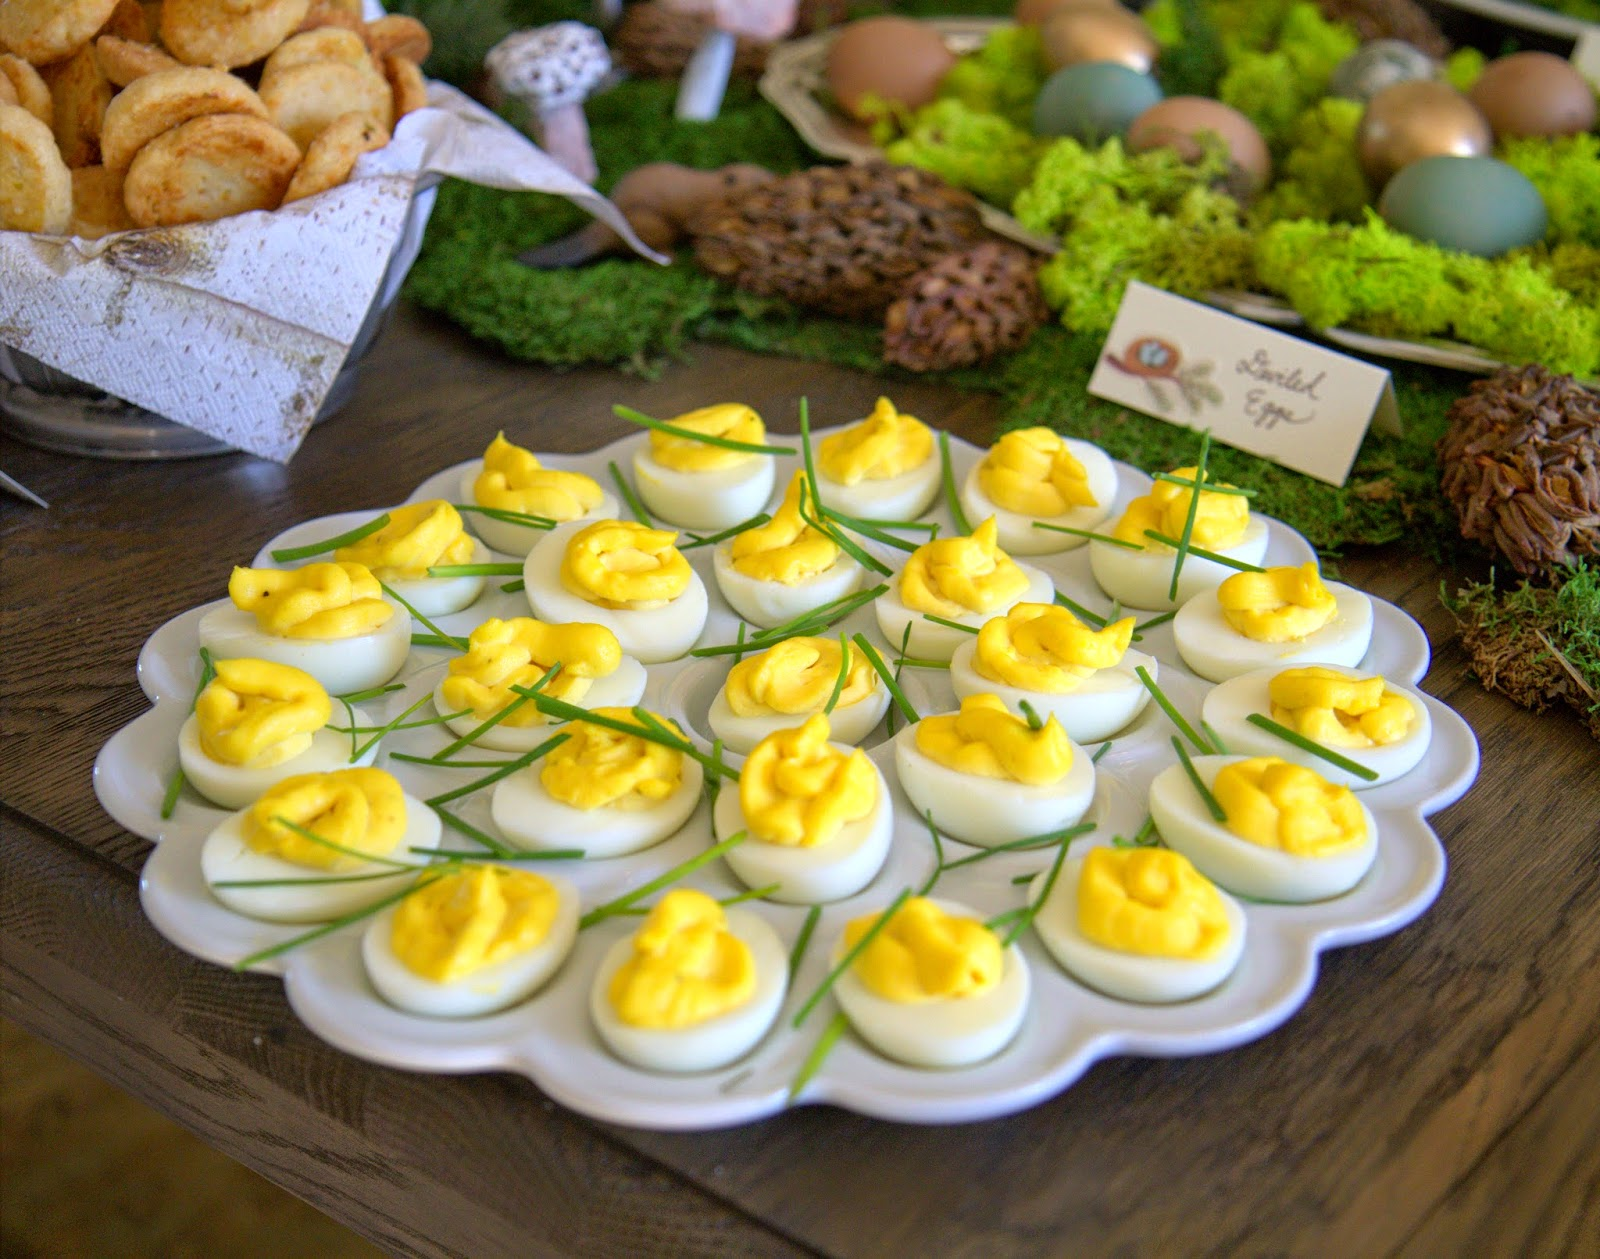 Woodland Party; Deviled eggs with chives; party food: Nora's Nest